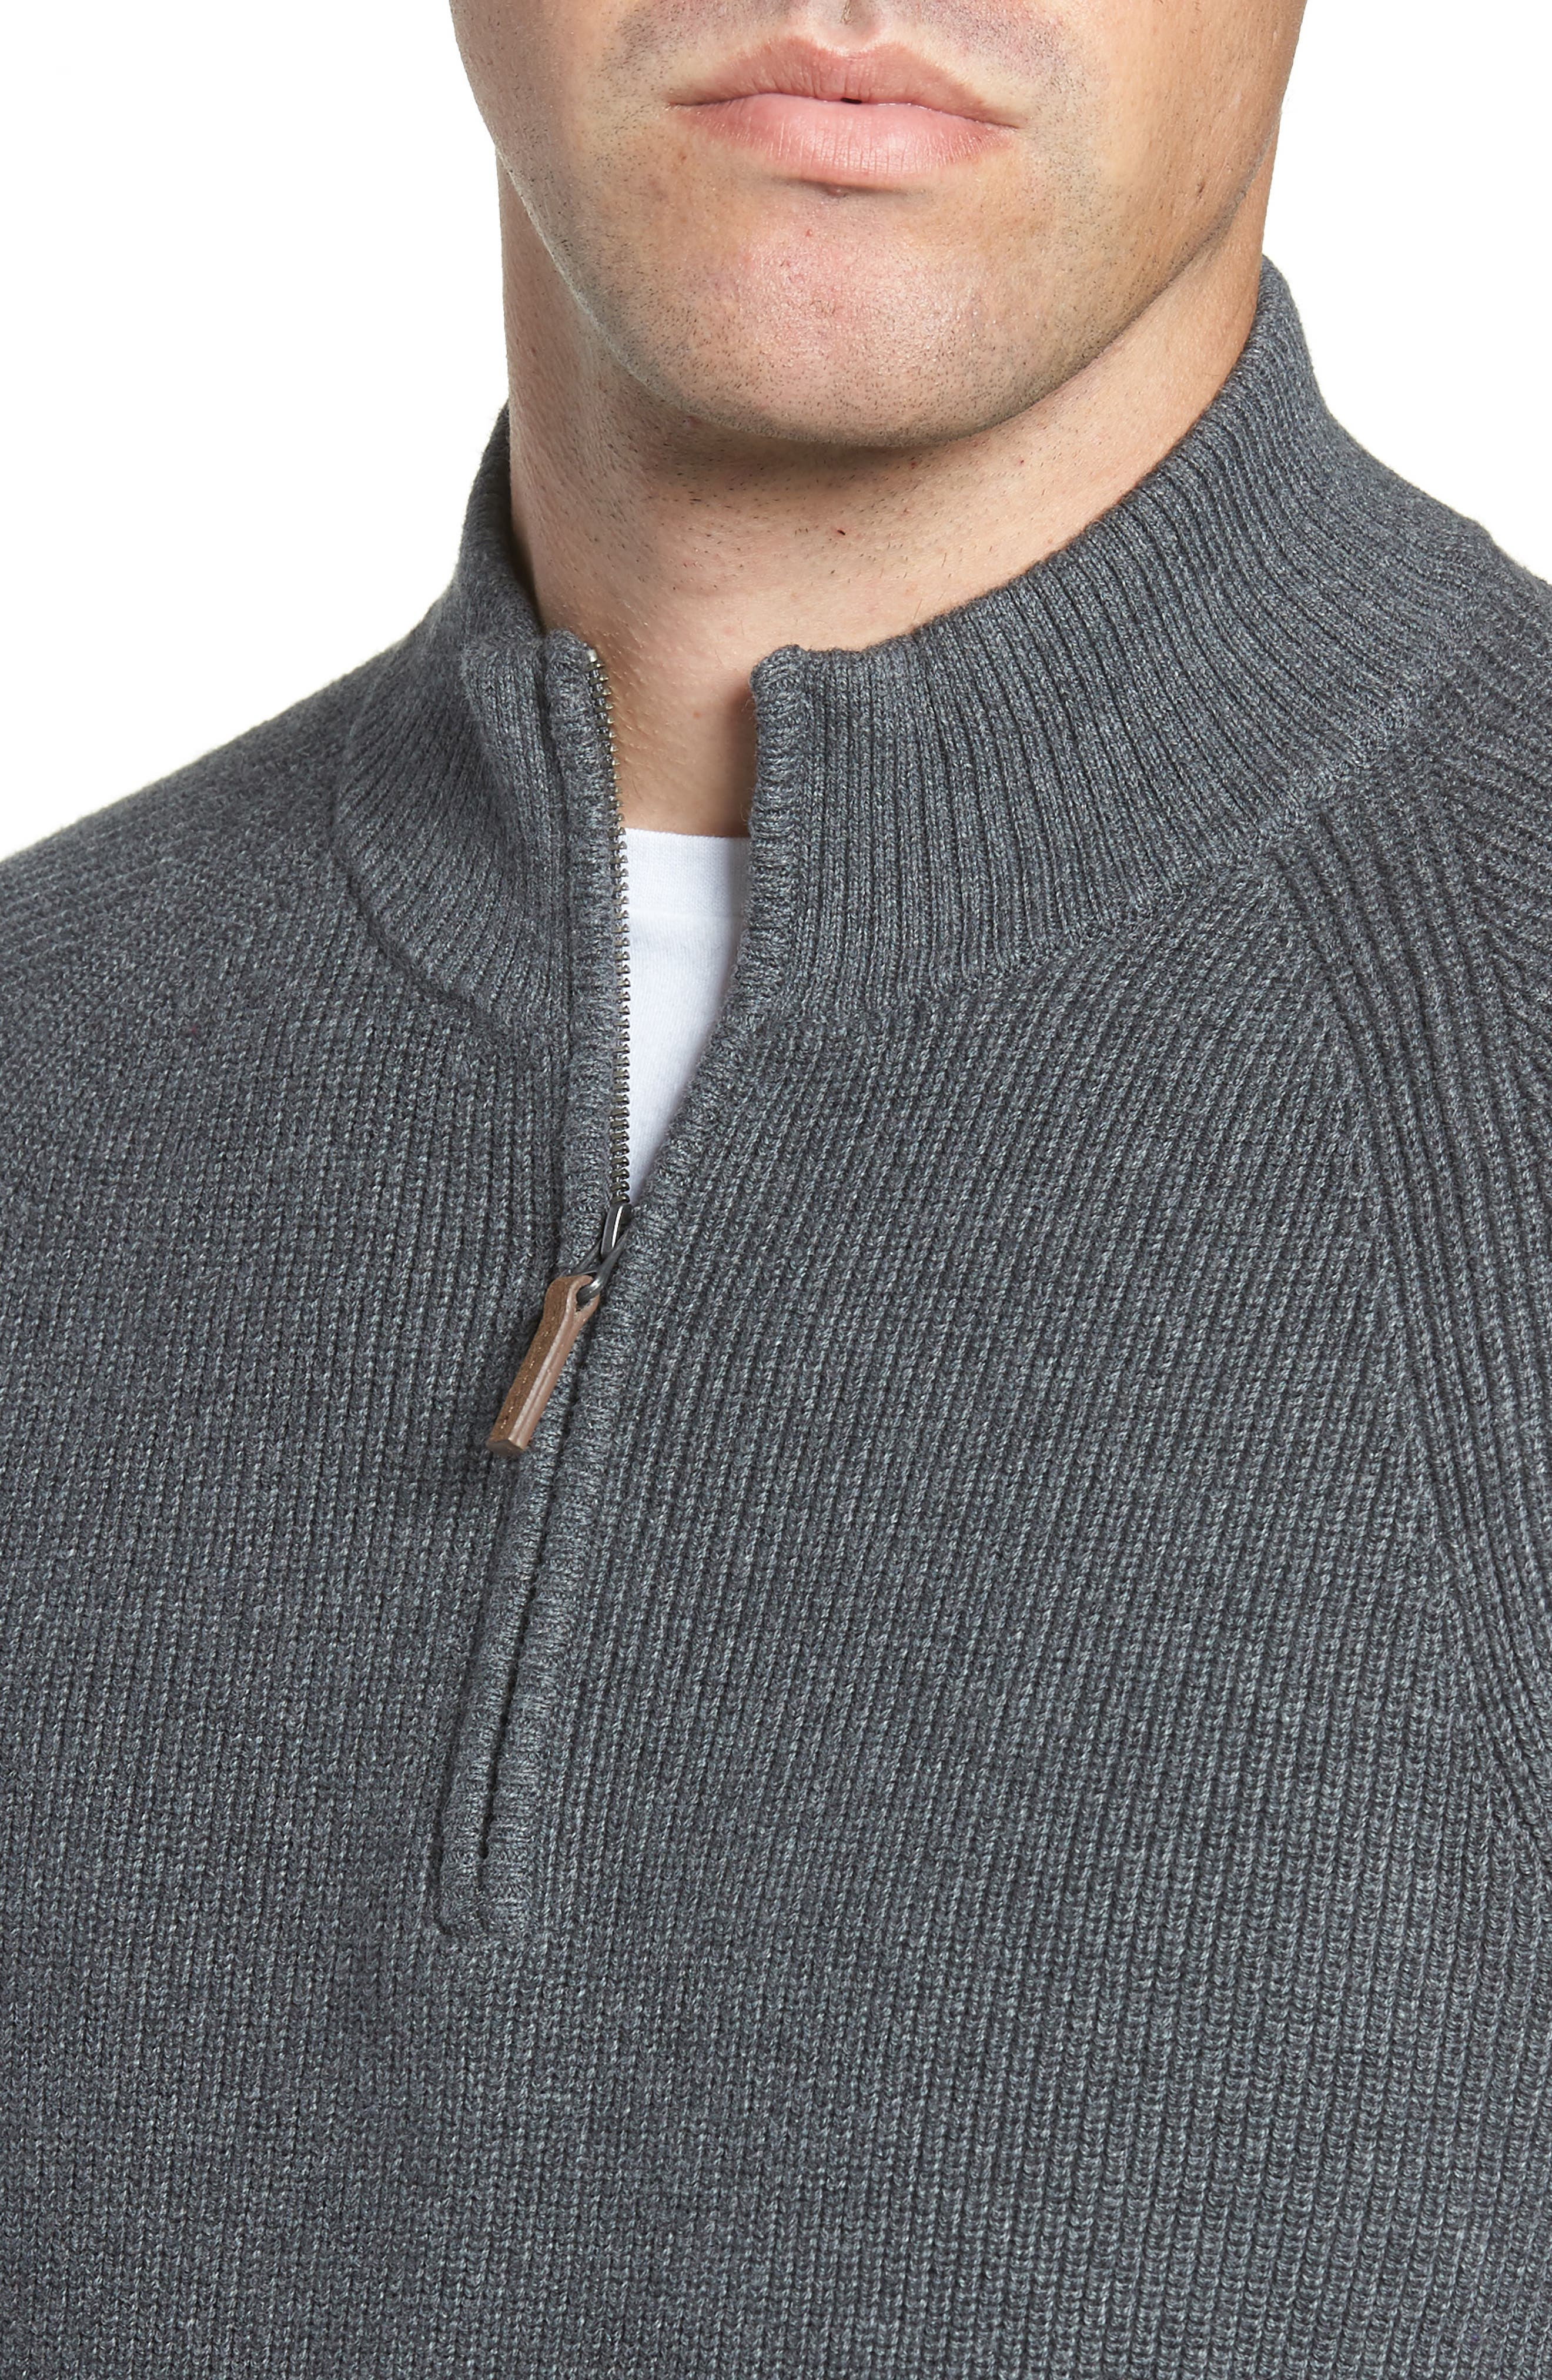 Ribbed Quarter Zip Sweater,                             Alternate thumbnail 4, color,                             GREY CASTLEROCK